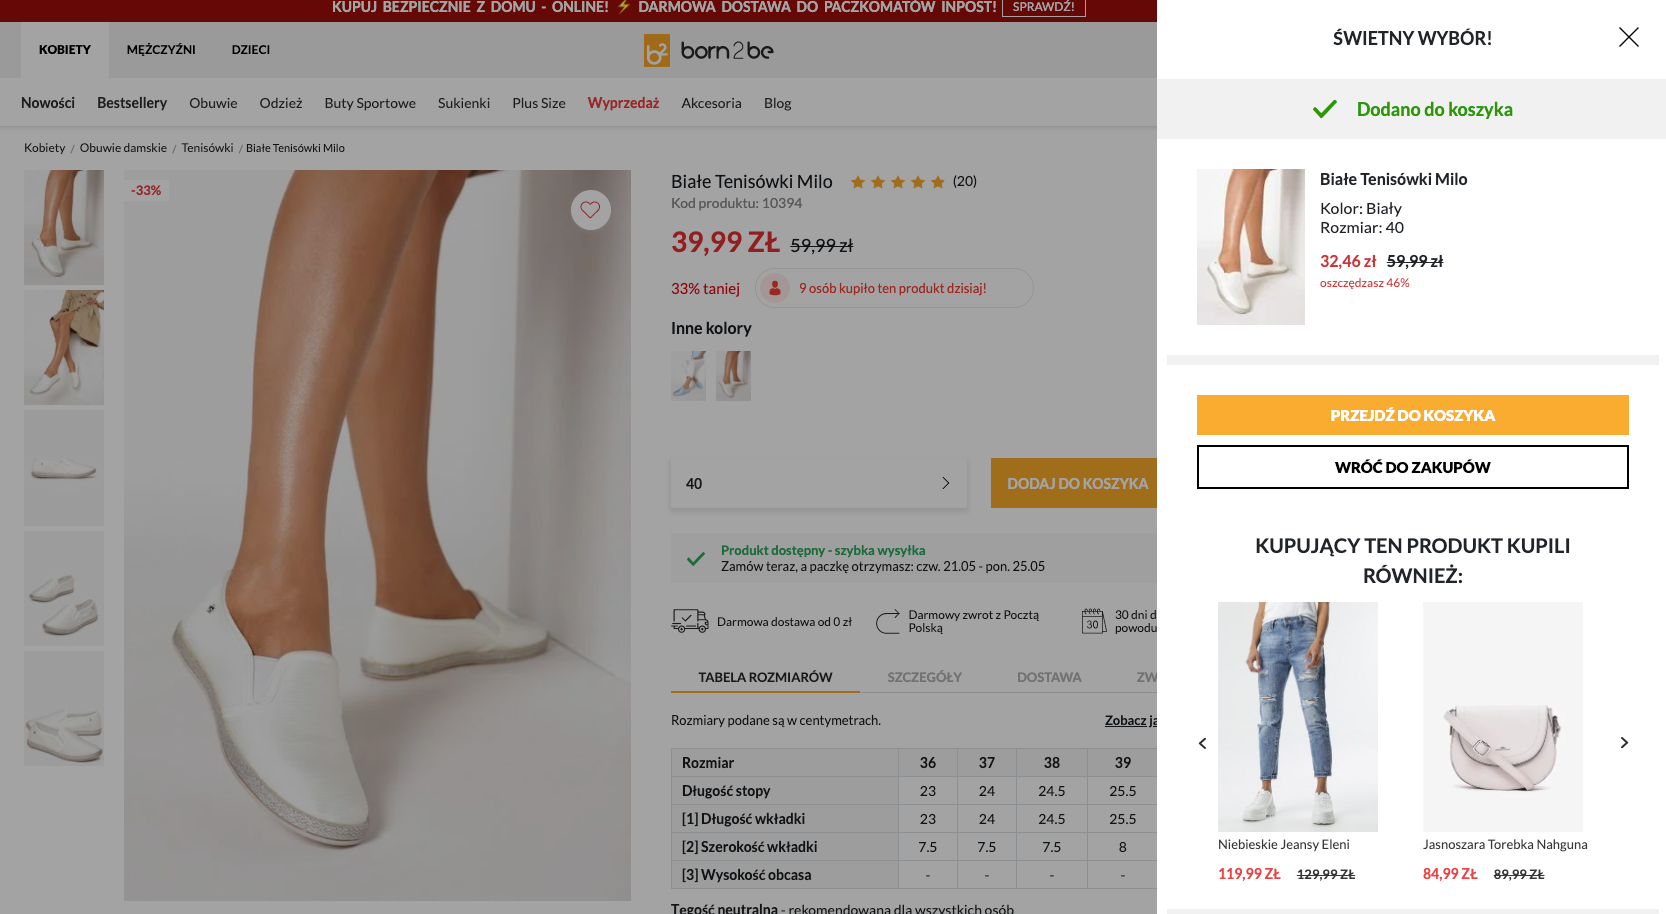 Product page on a website, women's legs in white shoes, on the right a panel informing about adding items to the basket